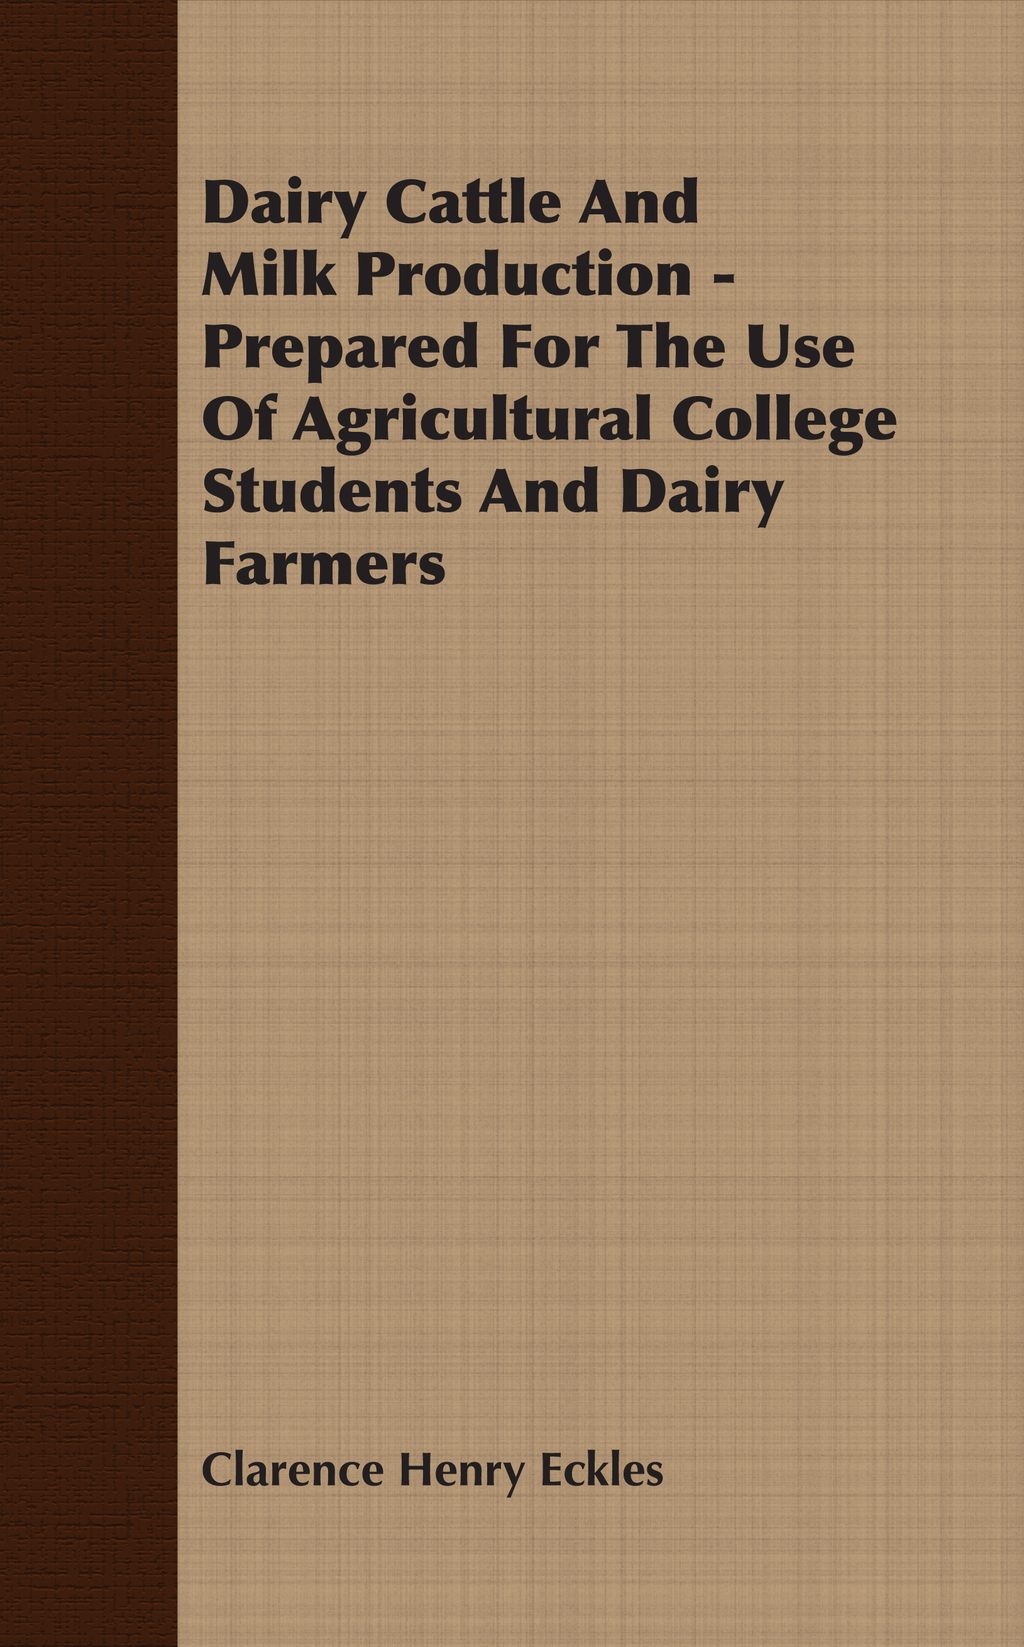 Dairy Cattle And Milk Production - Prepared For The Use Of Agricultural College Students And Dairy Farmers By: Clarence Henry Eckles